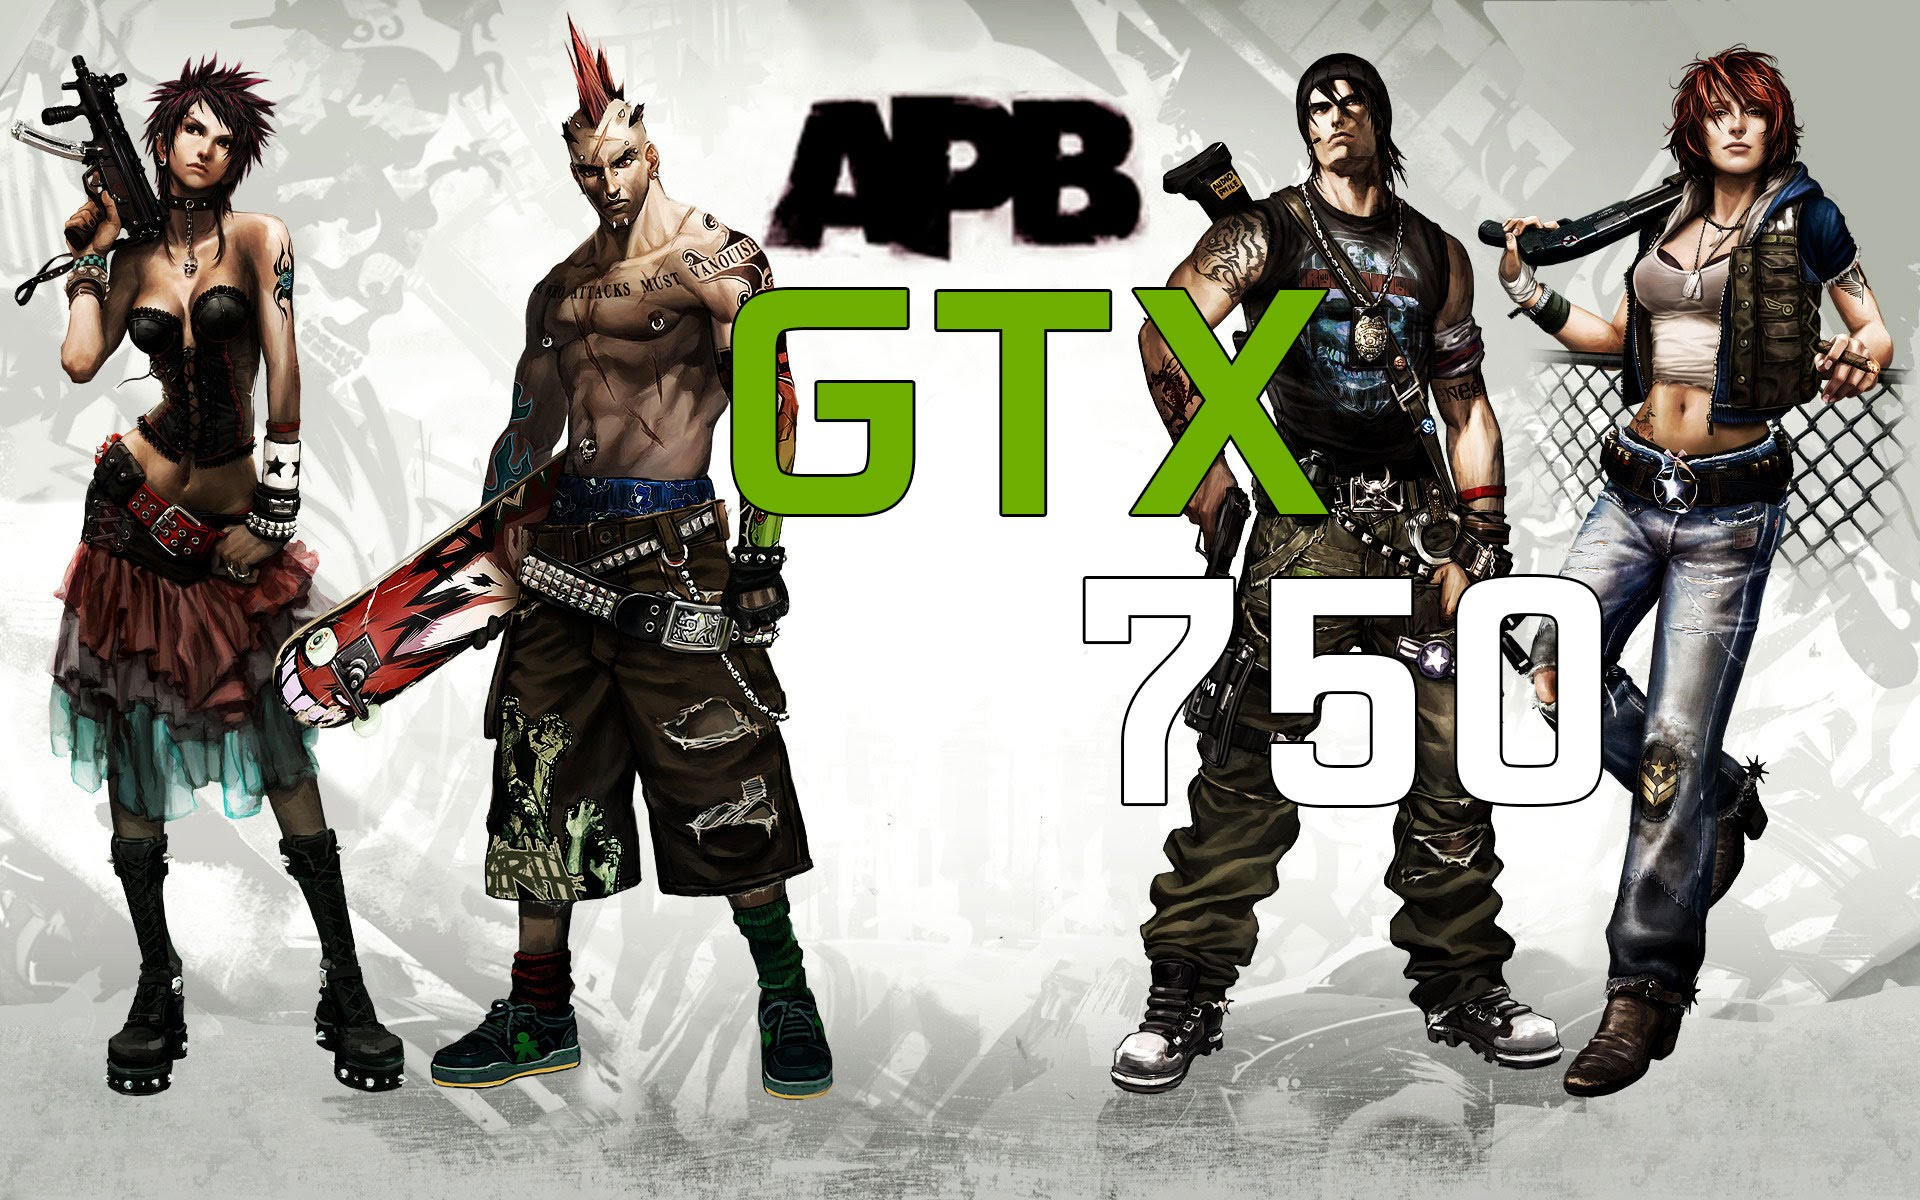 APB: All Points Bulletin High Quality Background on Wallpapers Vista